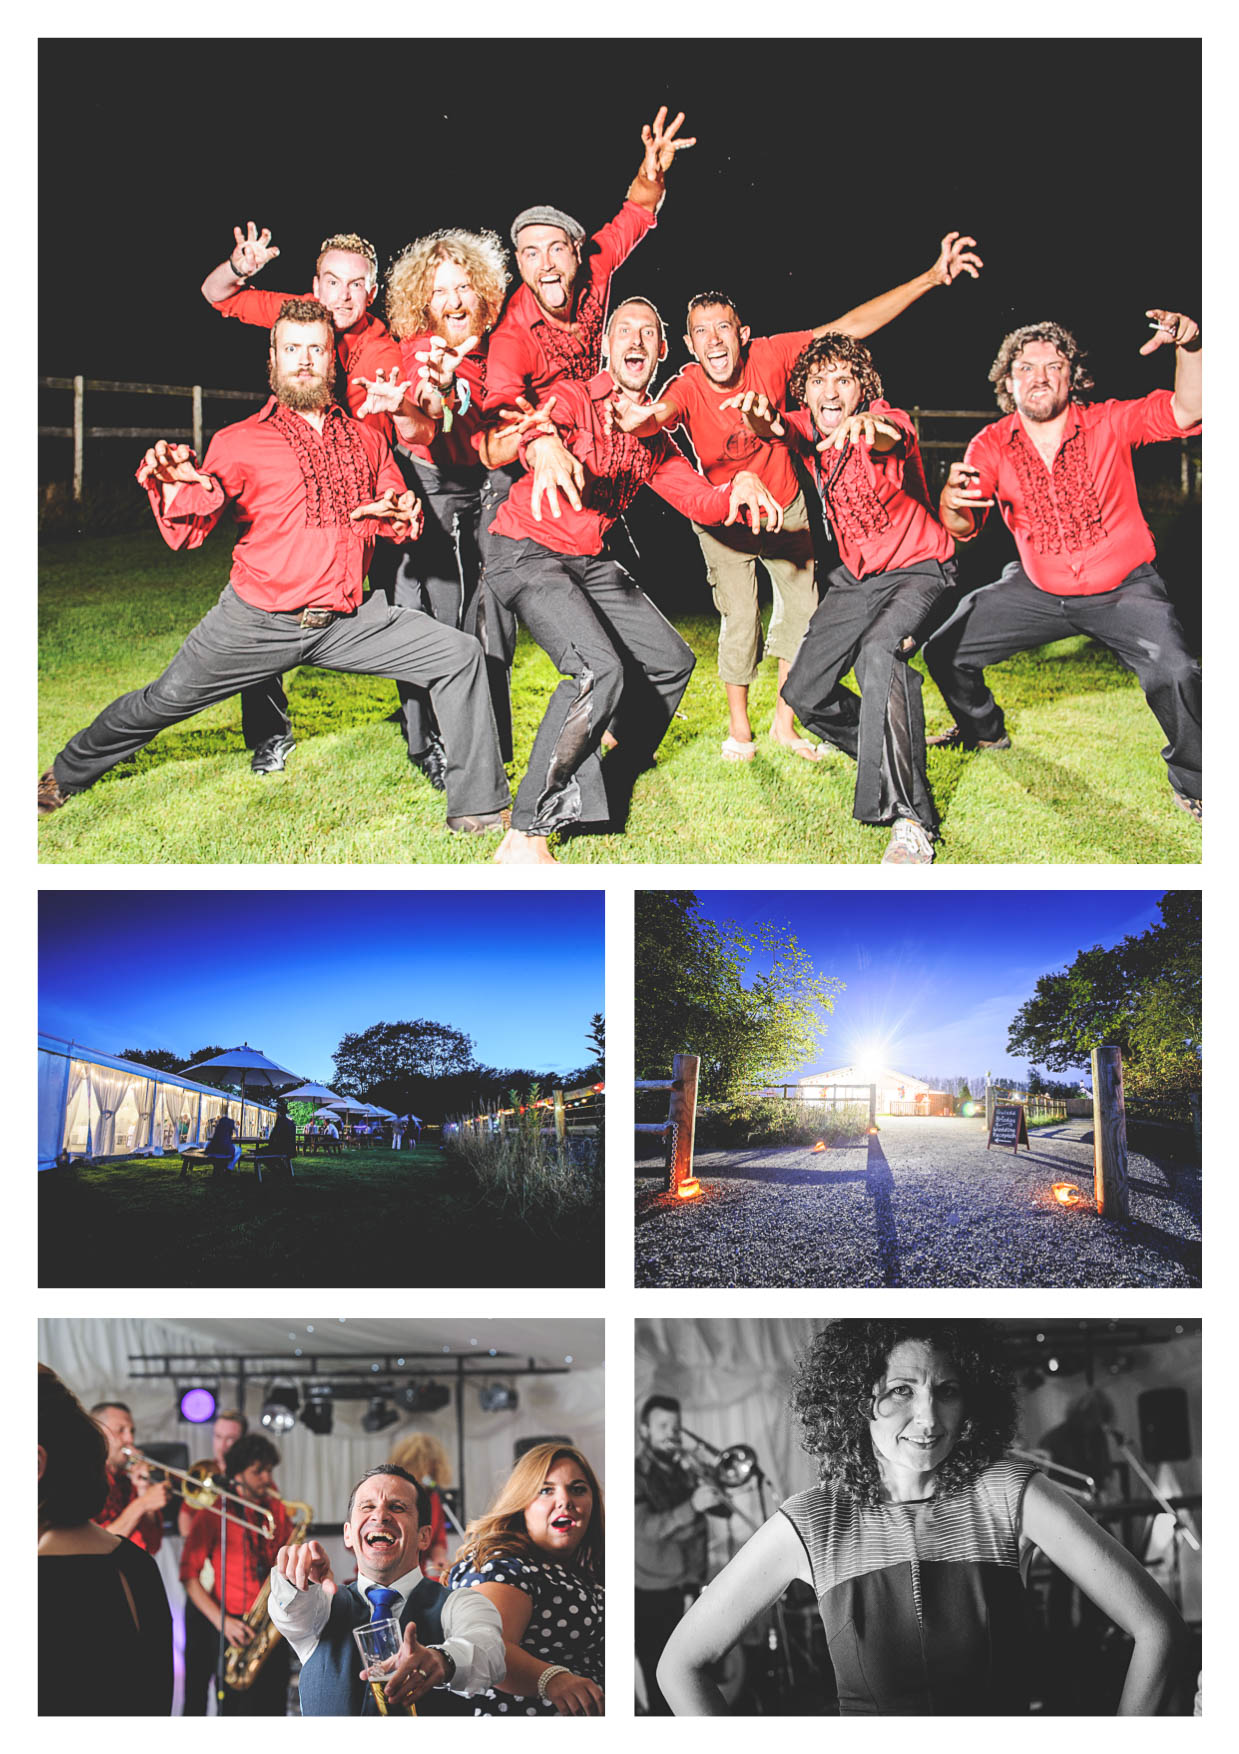 Photos of a band and party in the marquee at llanerch vineyard